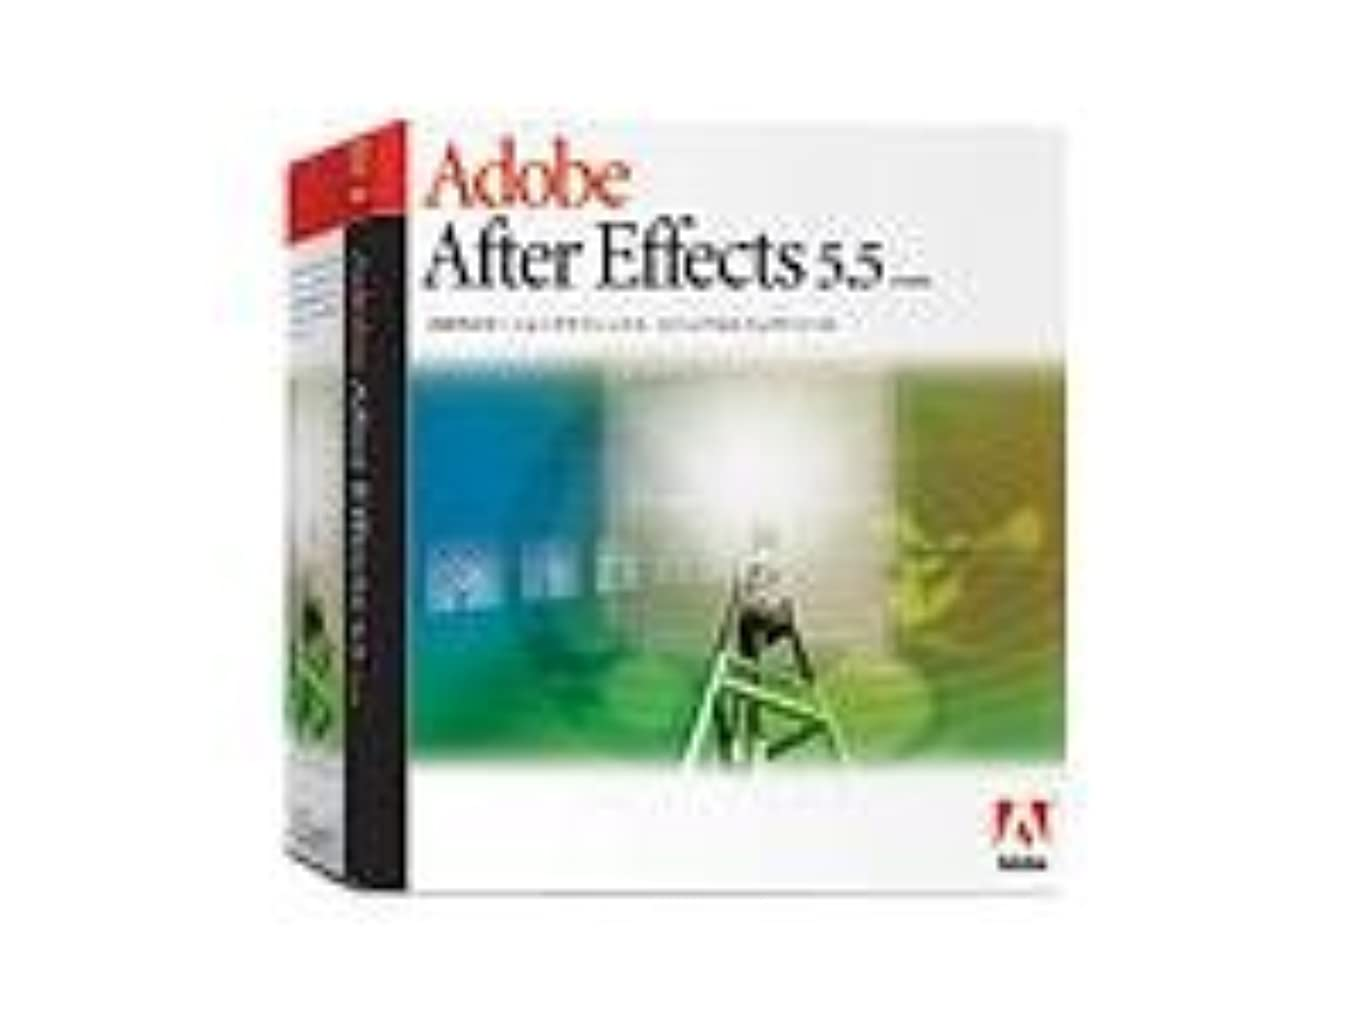 After Effects 5.5 ProVersion 英語版(Mac)